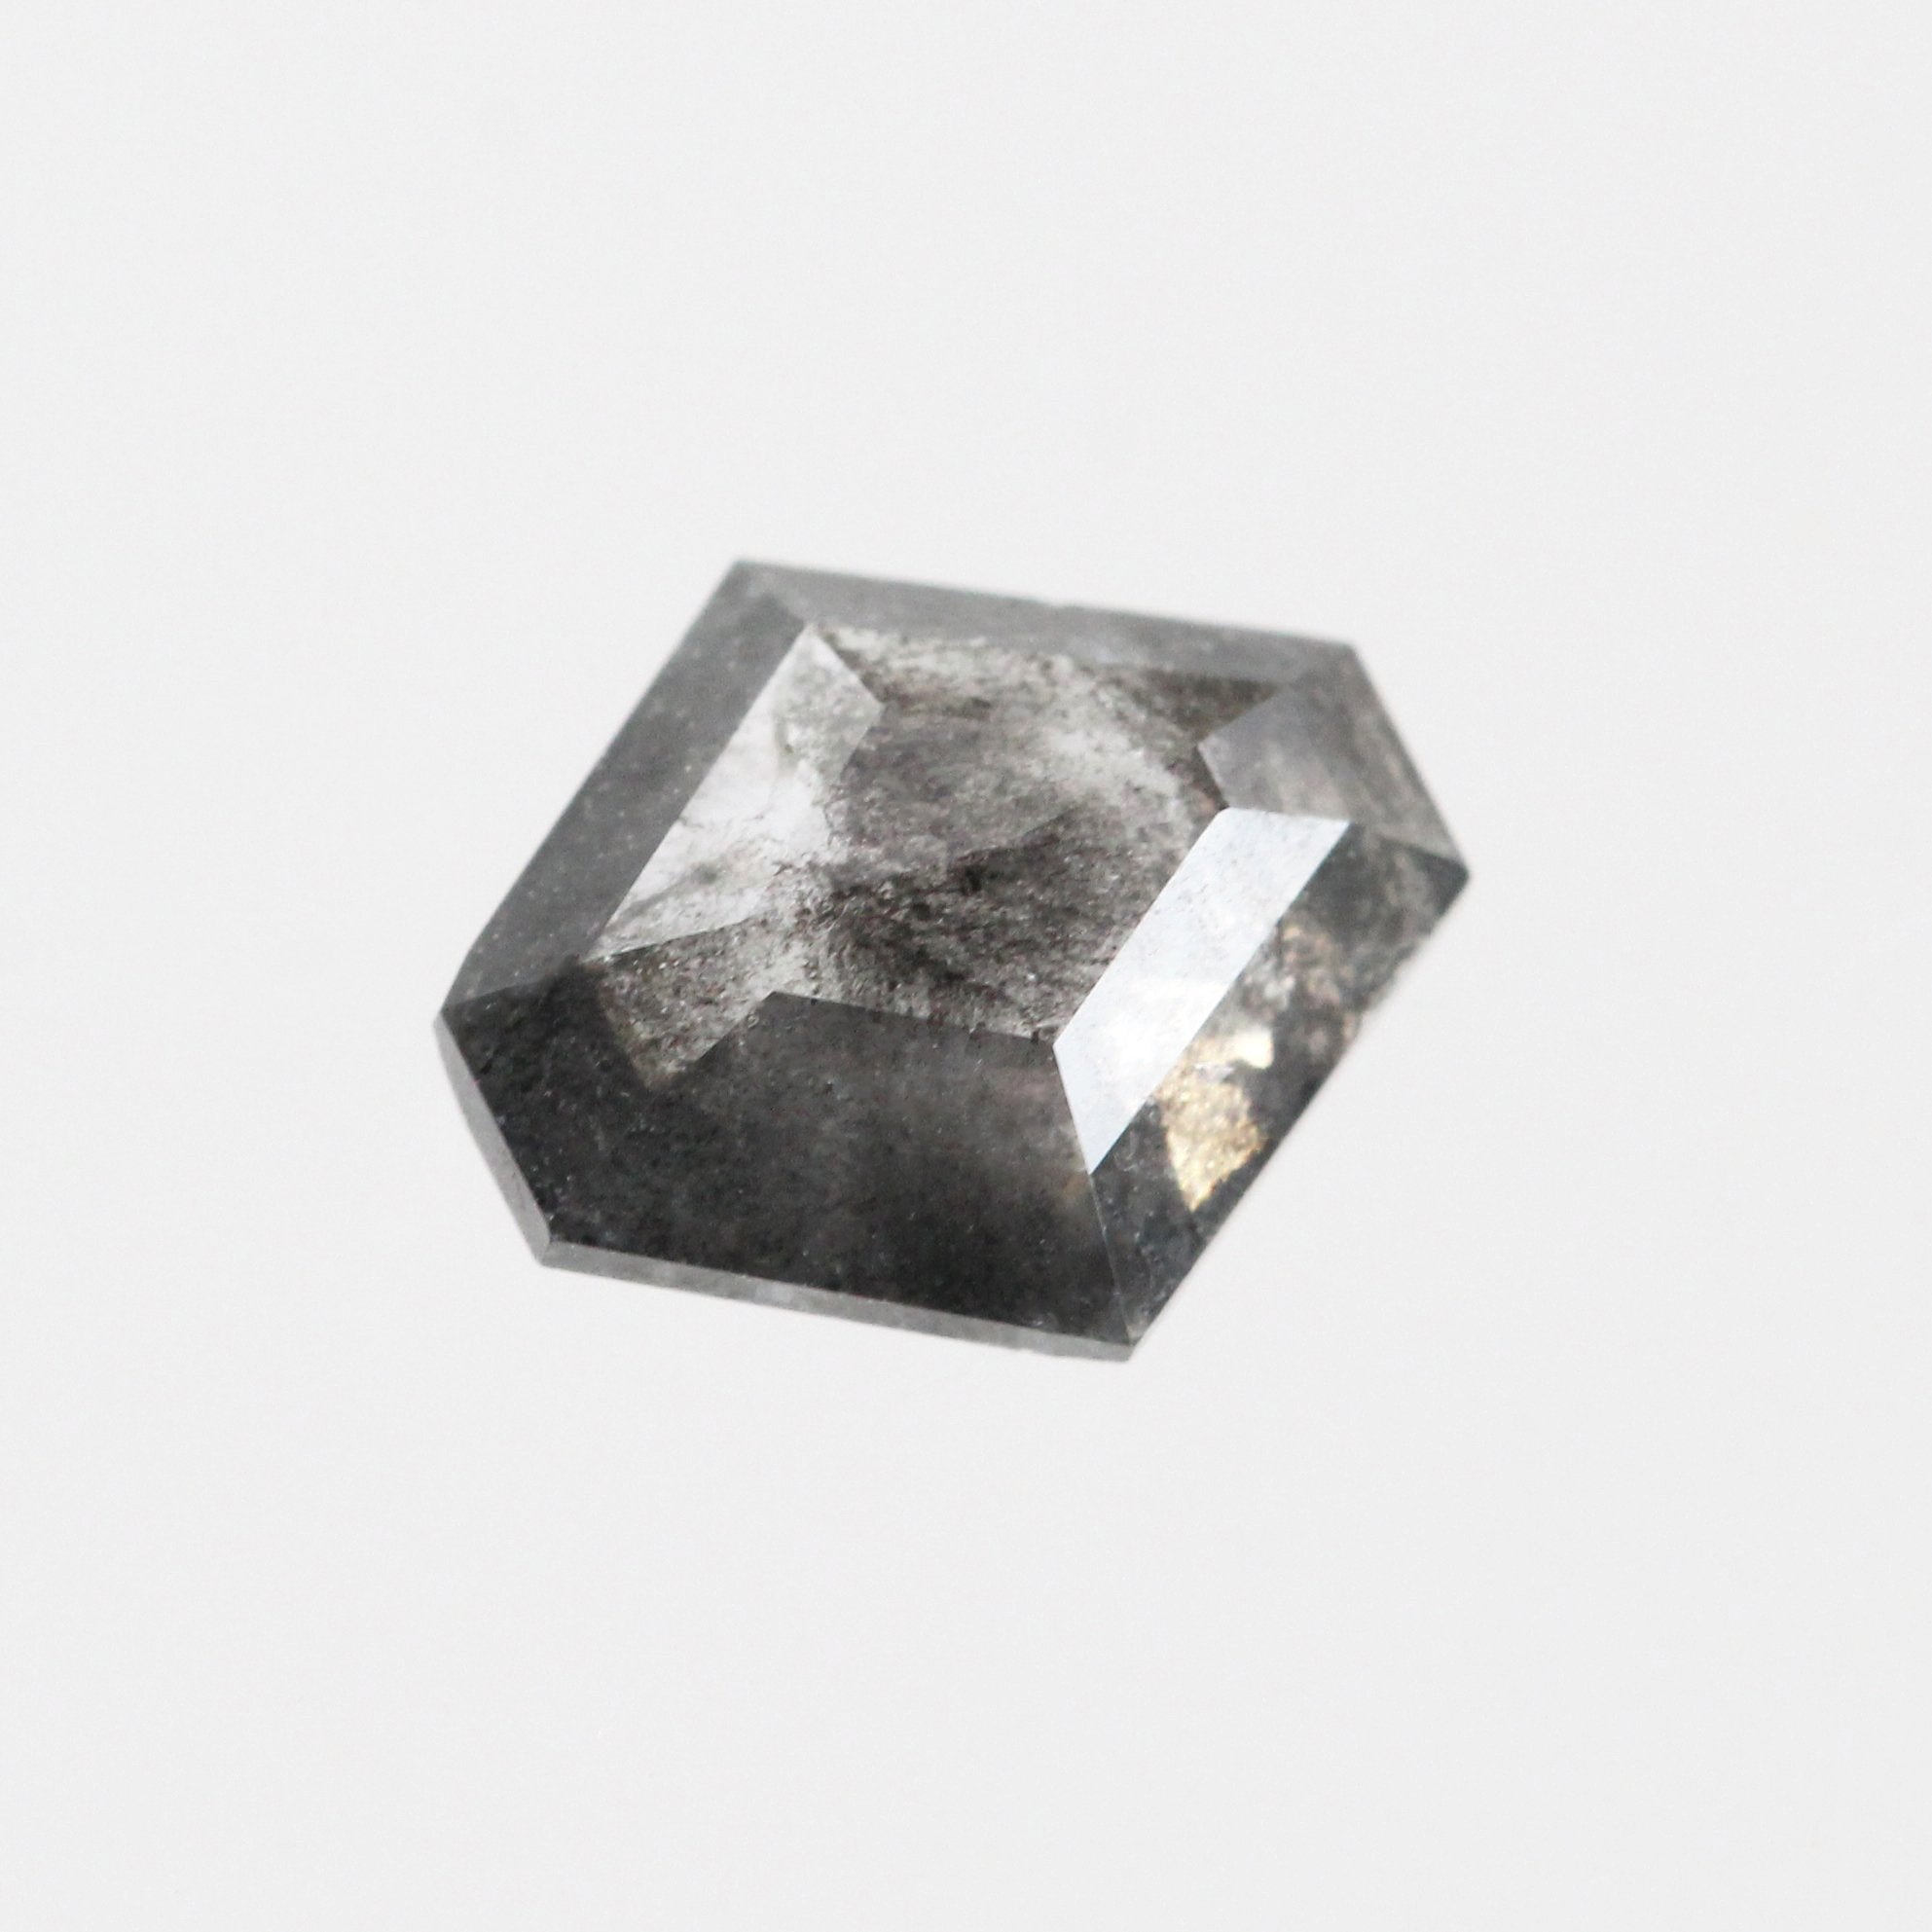 .85 carat Celestial Rose Cut Hexagon Diamond - Inventory Code BHEX85